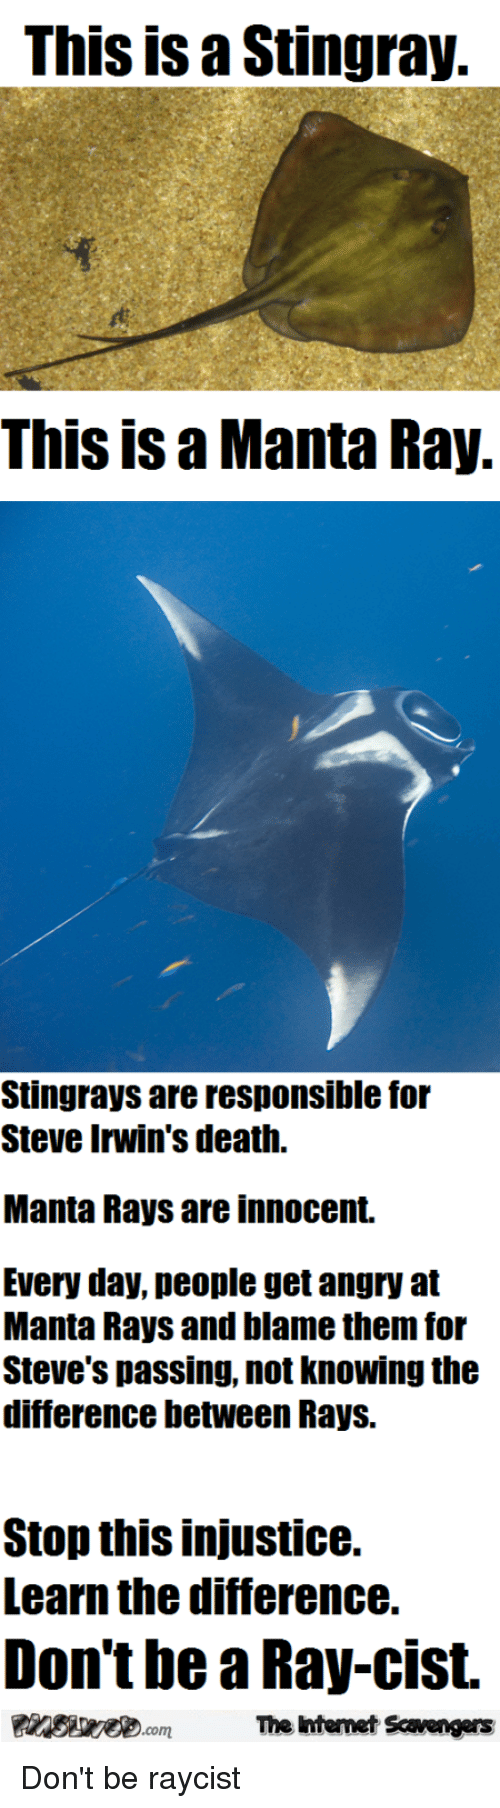 Funny, Death, and Angry: This is a Stingray  This is a Manta Ray.  Stingrays are responsible for  Steve Irwin's death.  Manta Rays are innocent  Every day, people get angry at  Manta Rays and blame them for  Steve's passing, not knowing the  difference between Rays.  Stop this injustice.  Learn the difference.  Don't be a Ray-cist.  The intemet Scavengers